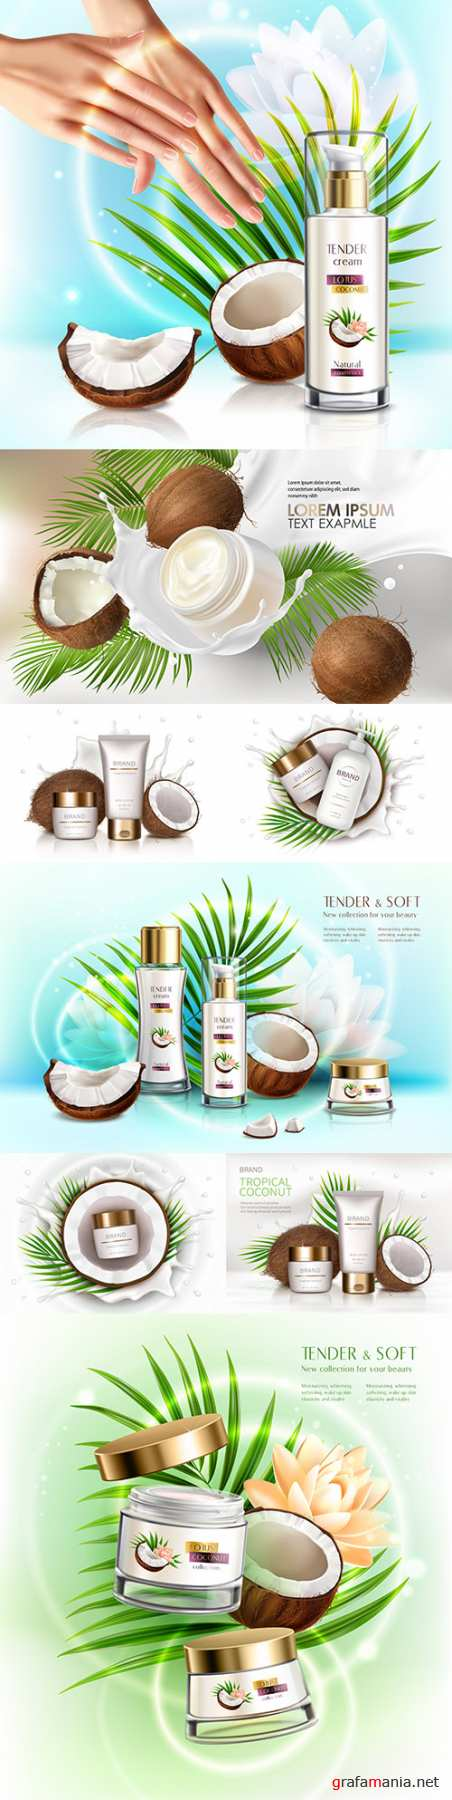 Natural coconut cosmetics for skin care with dispenser